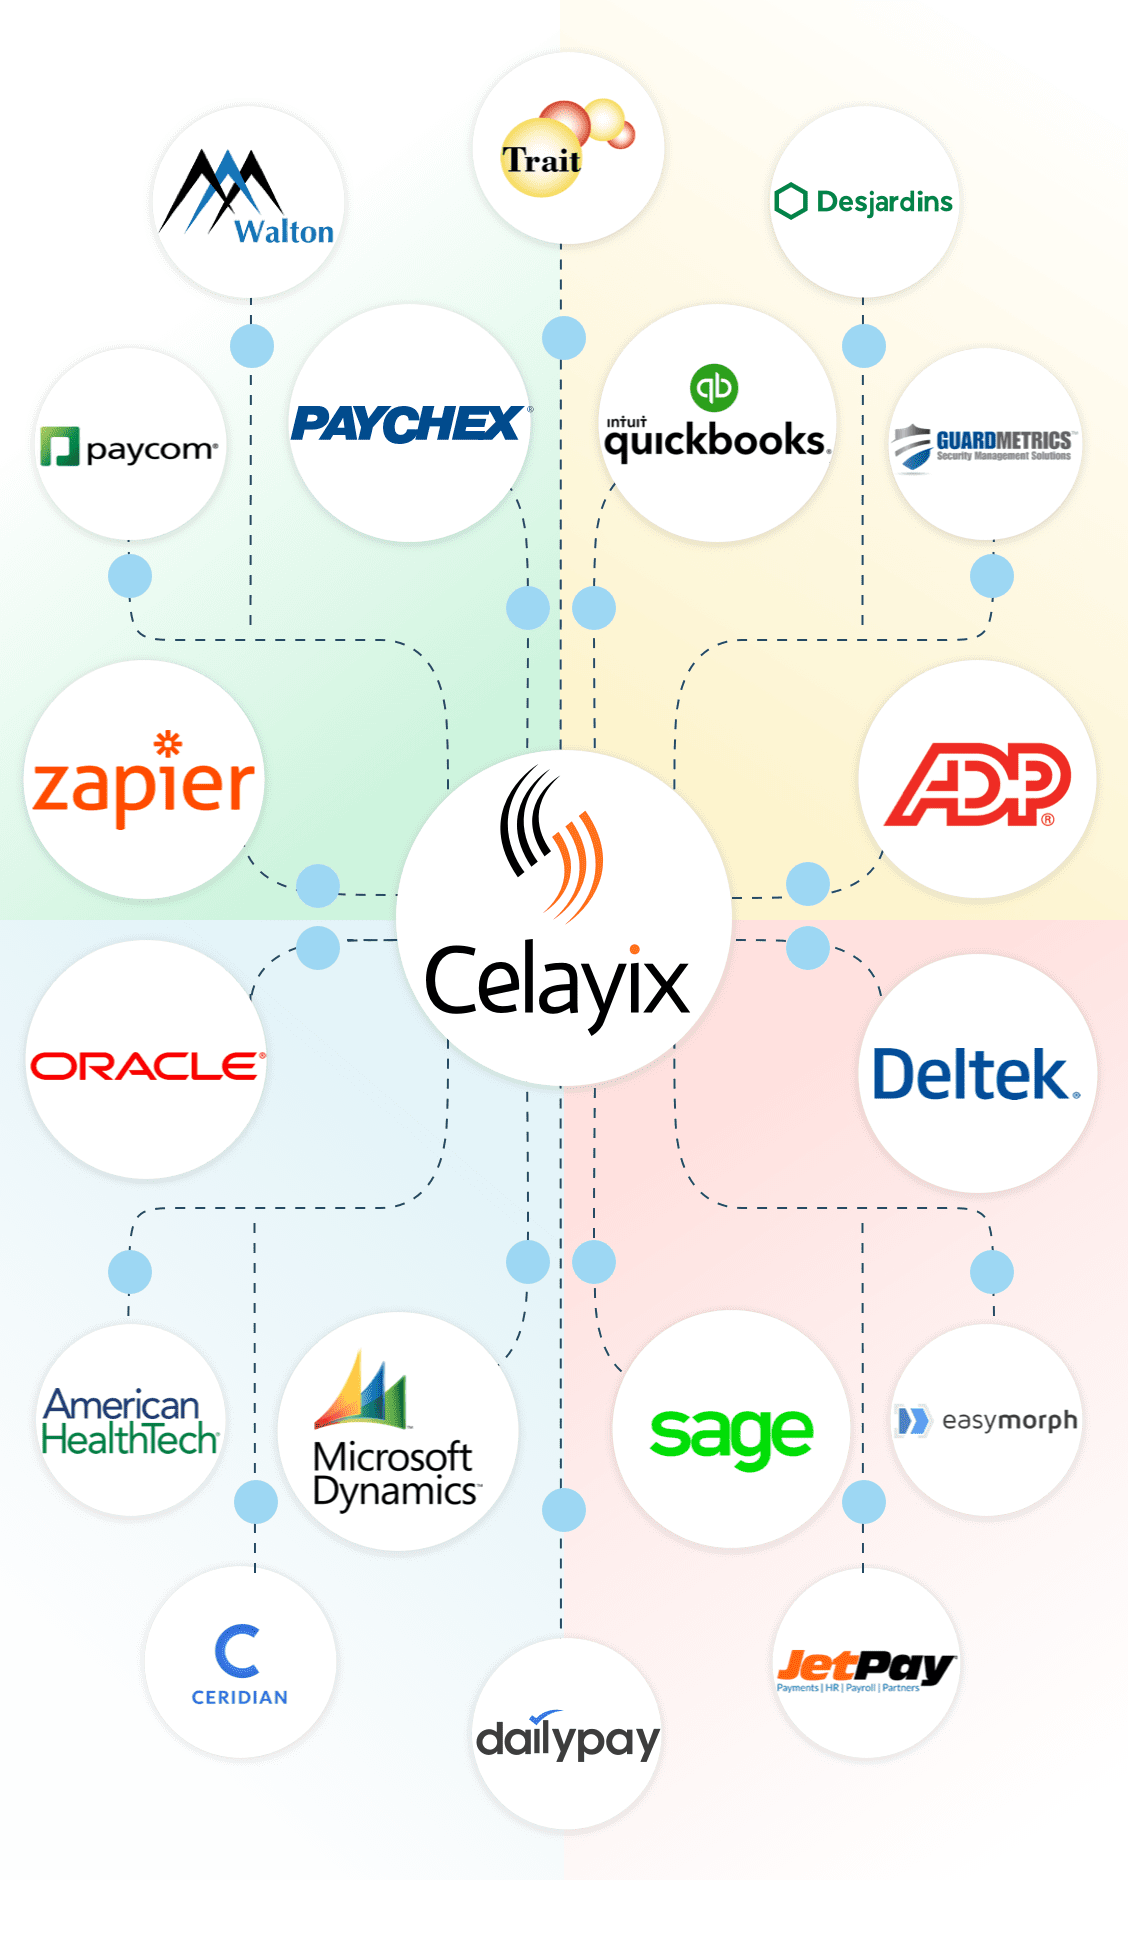 Celayix best of breed ecosystem diagram for mobile